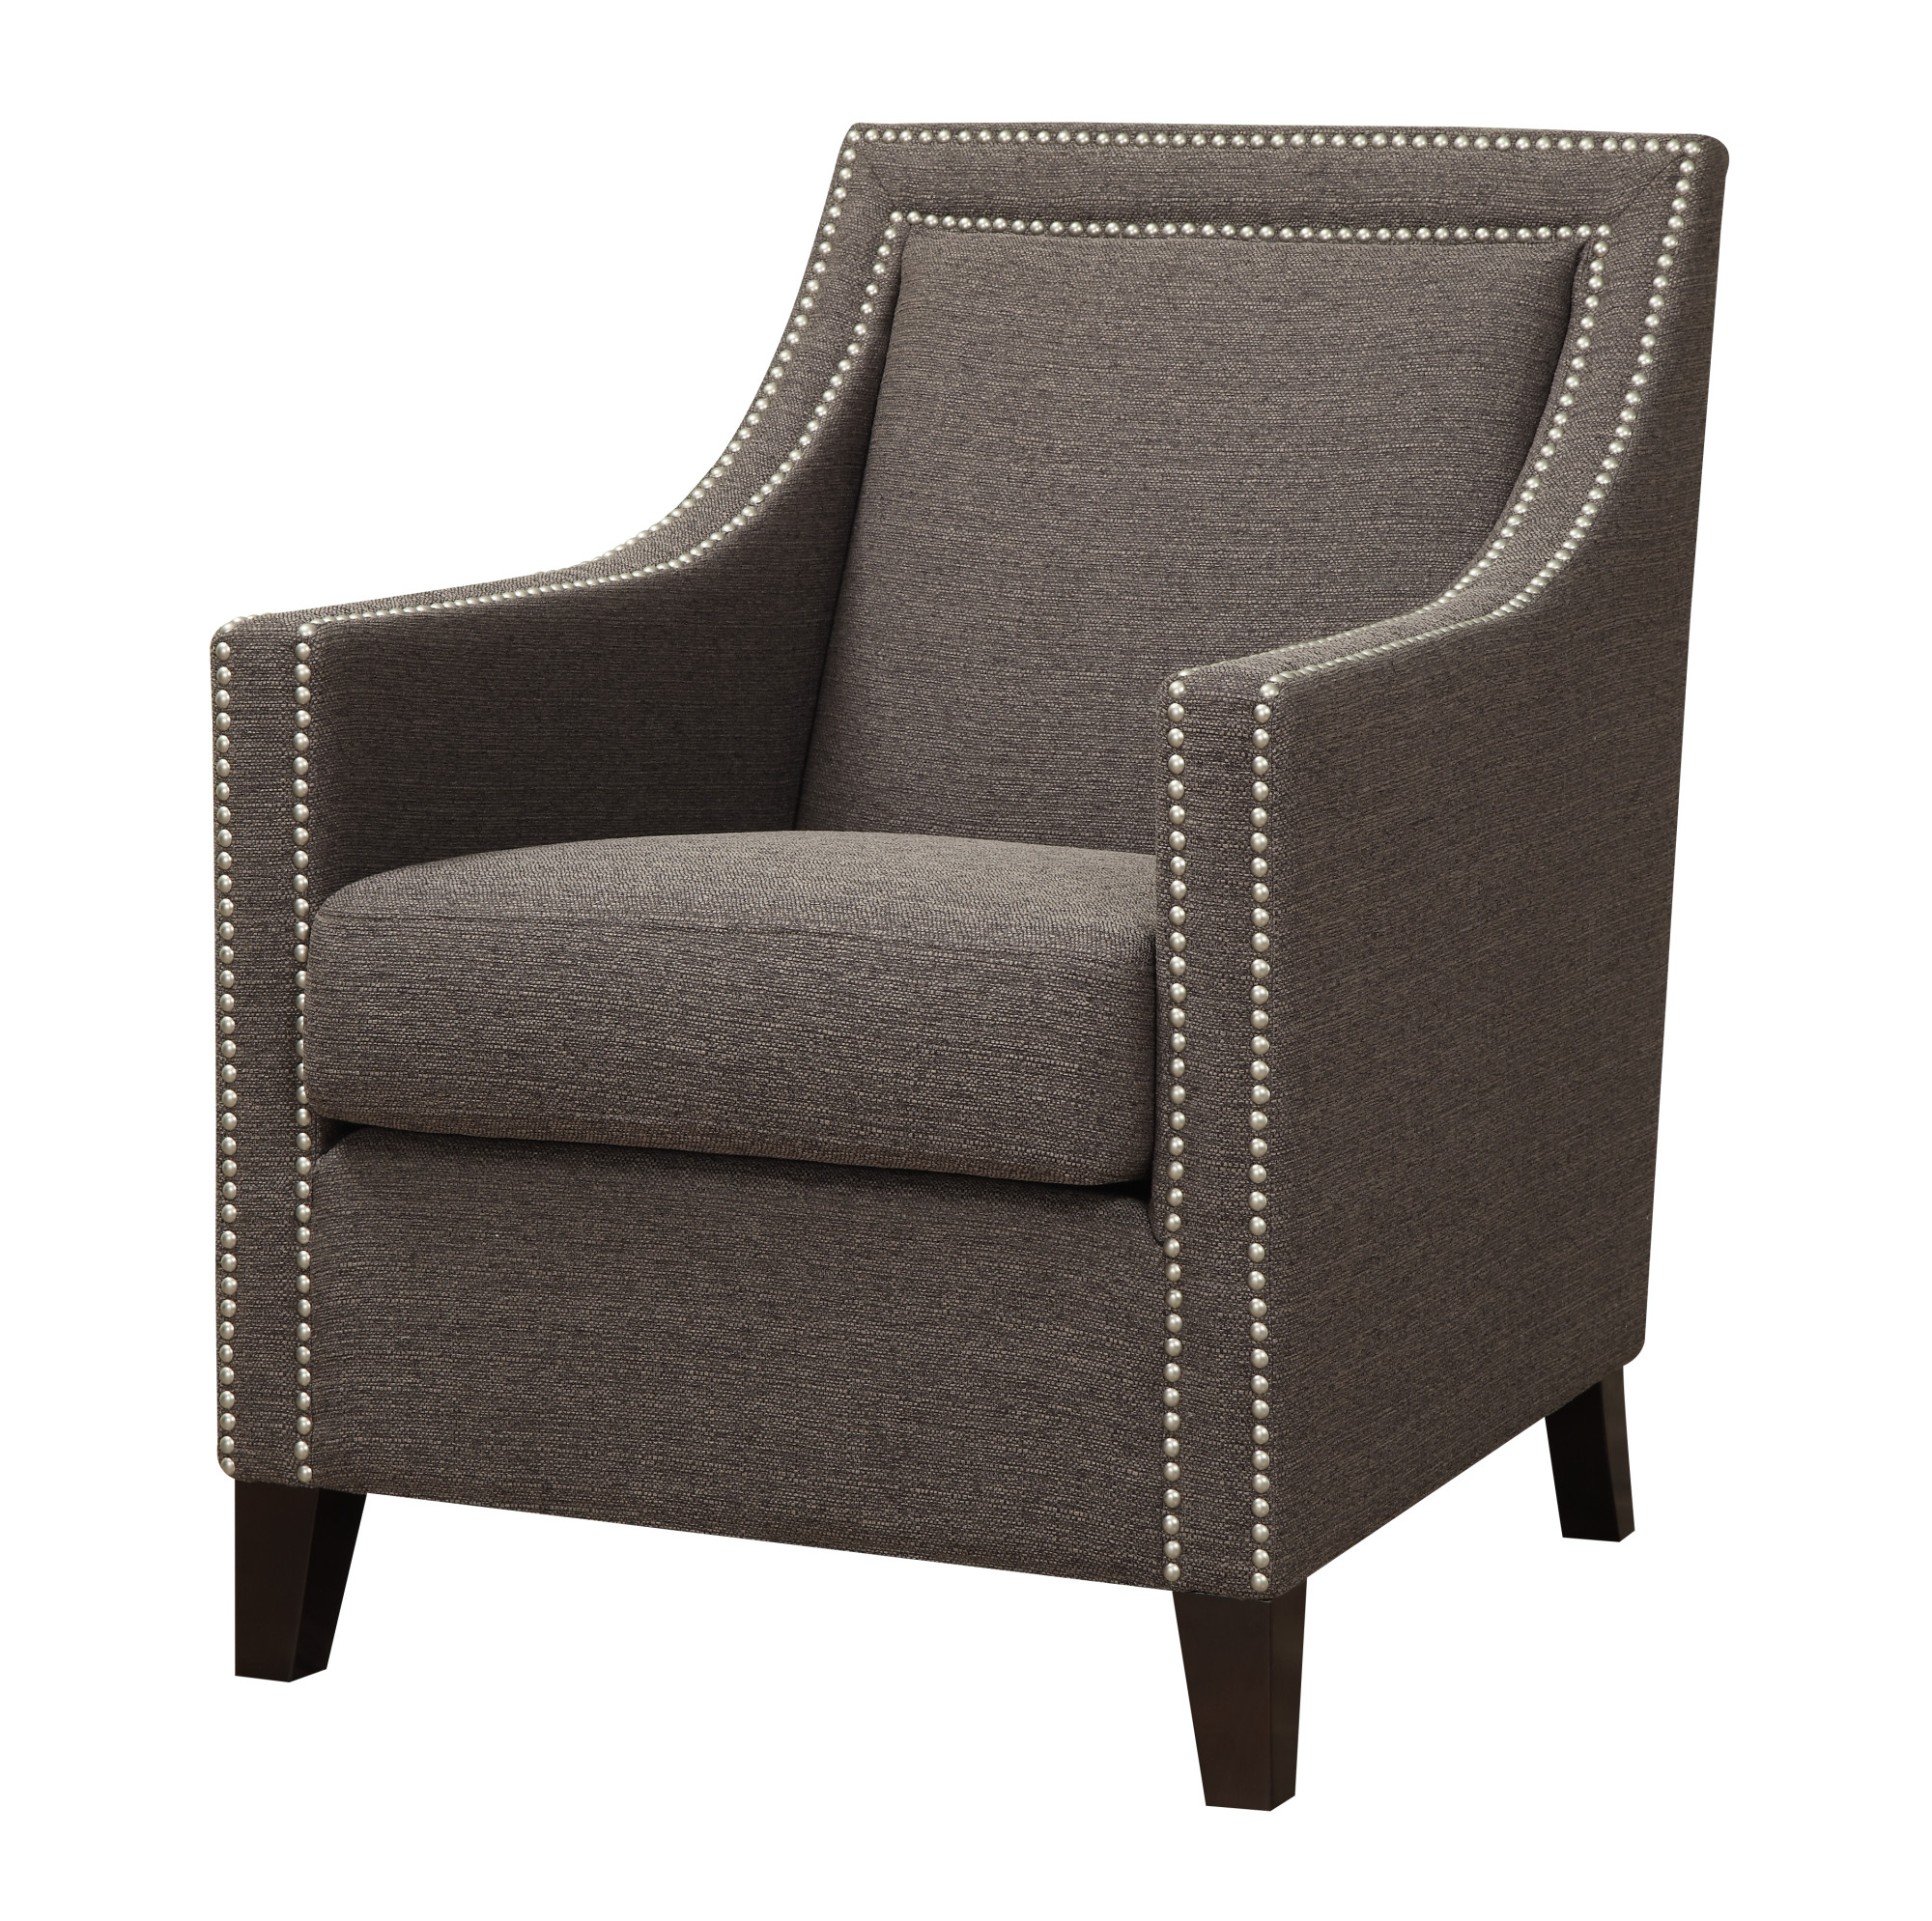 Emerald Home Janelle Brown Accent Chair with Fixed Back And Double Nailhead Trim